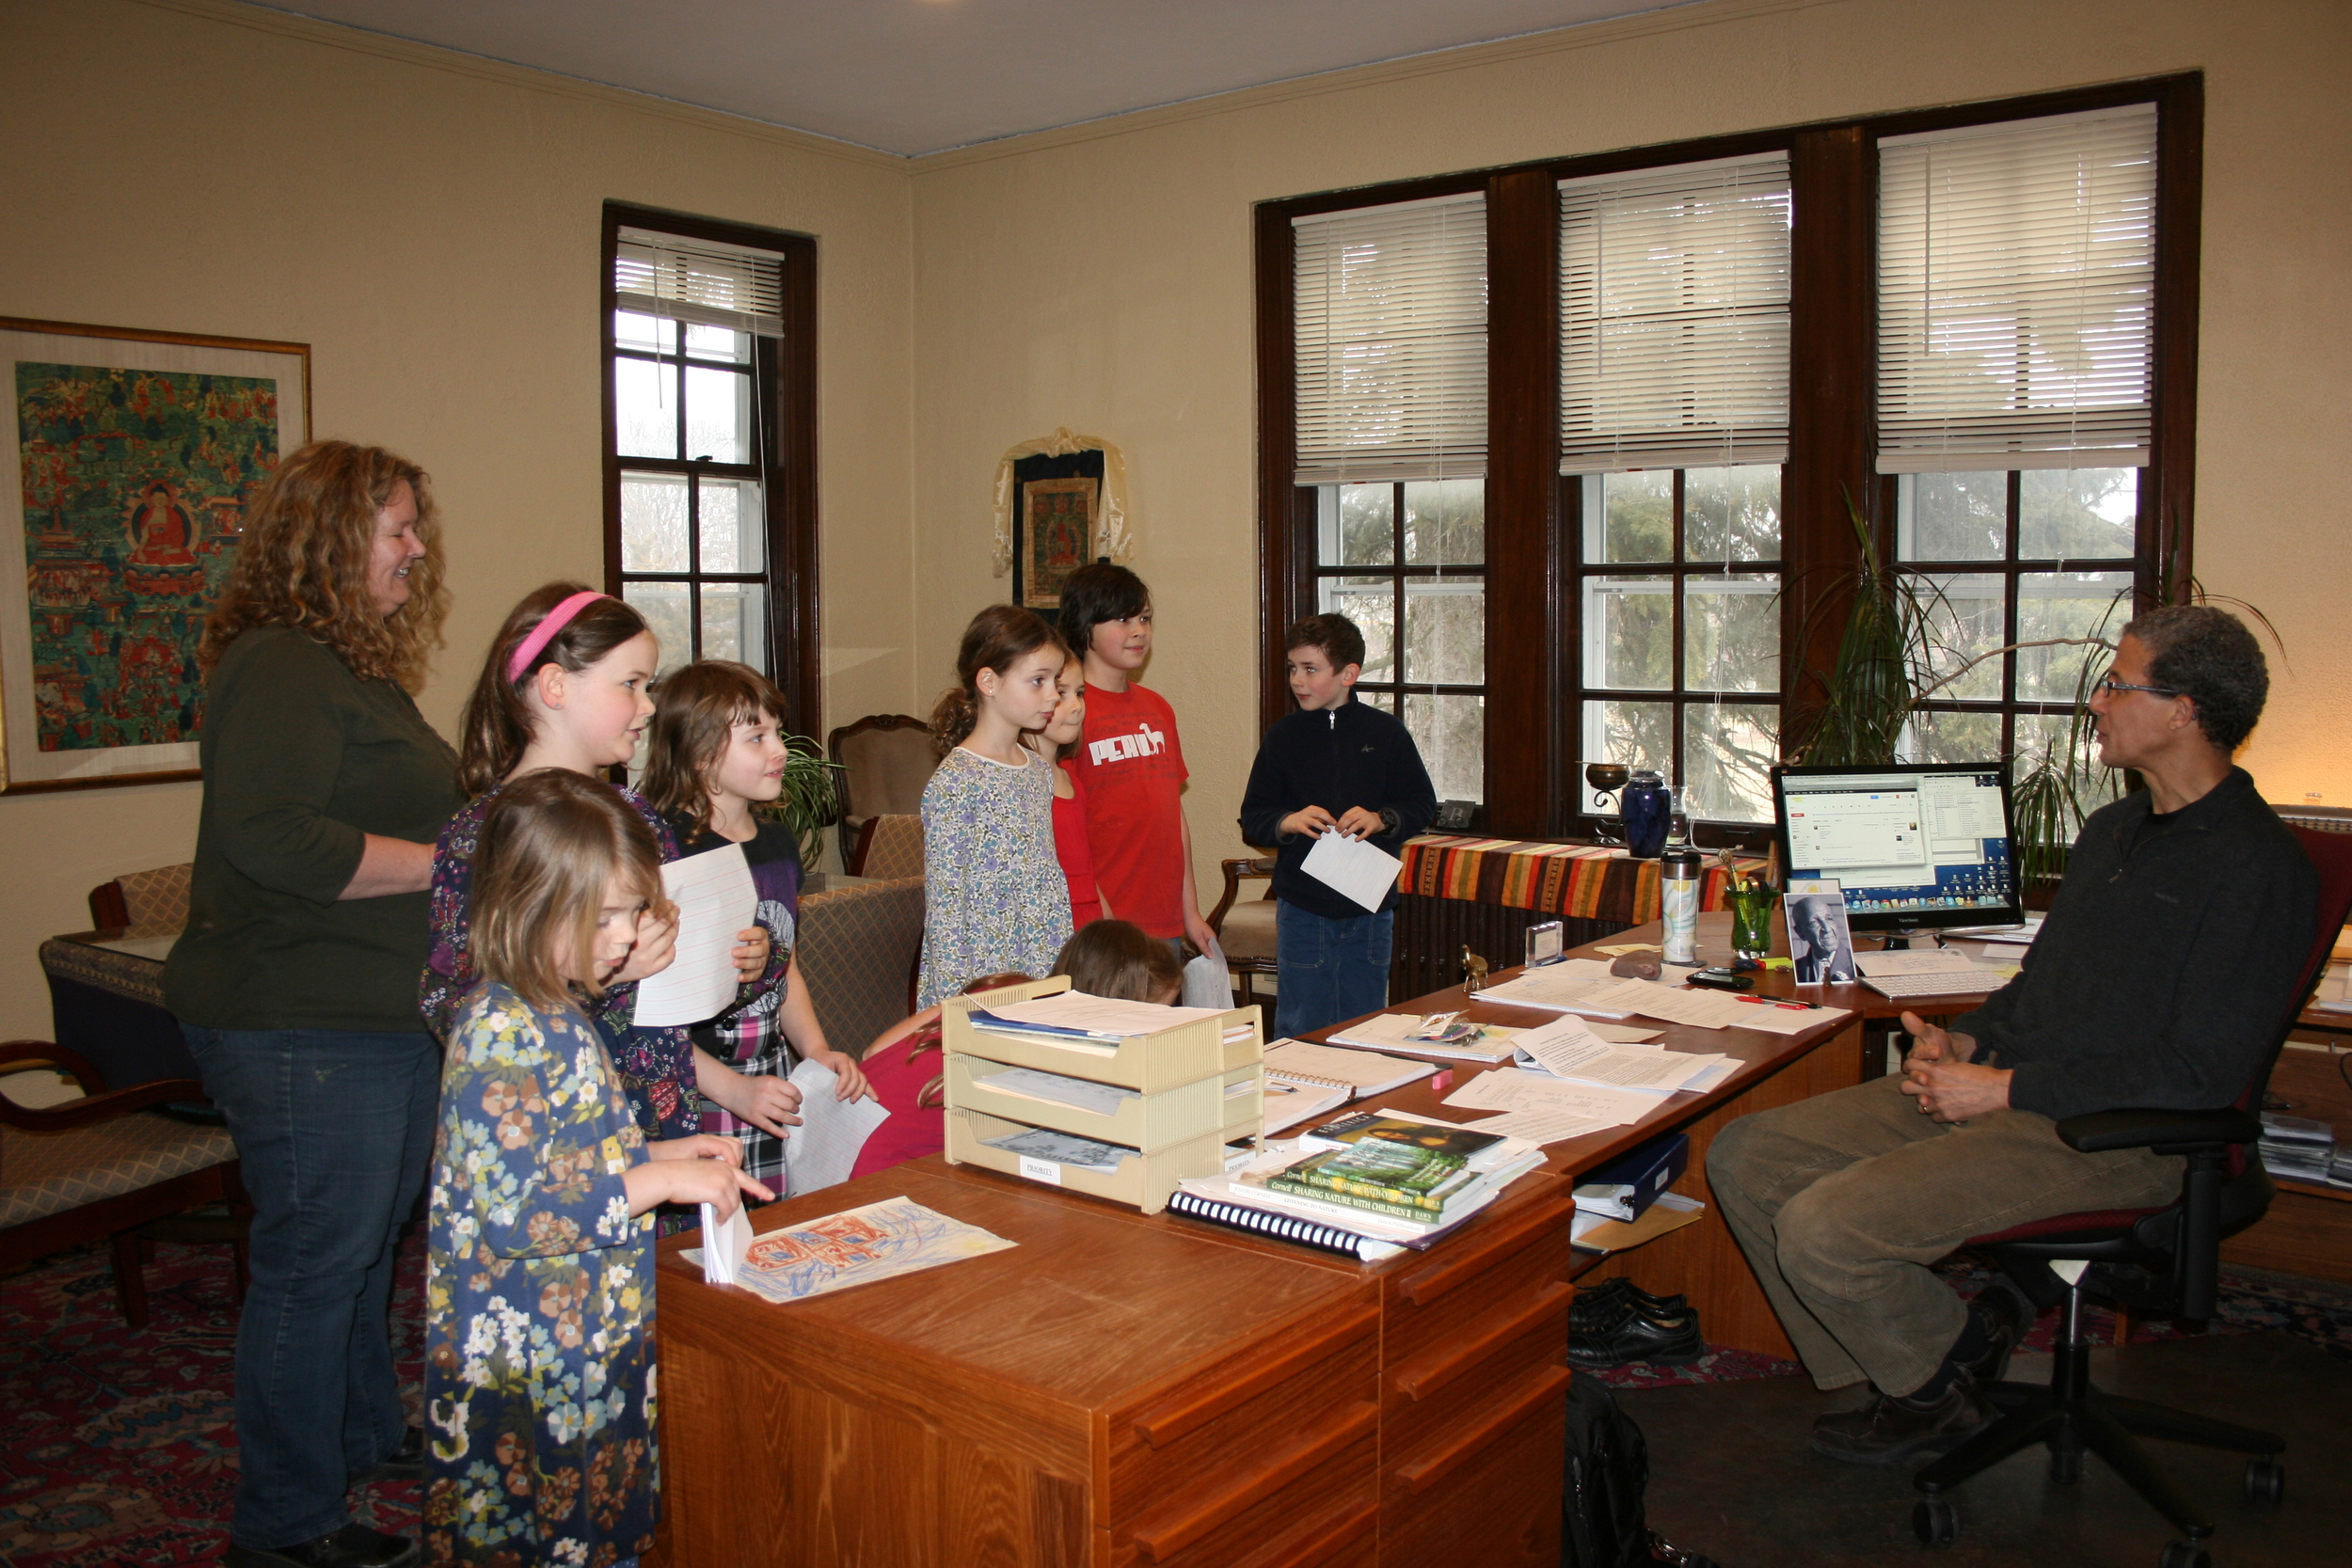 Tim Boyd, president of the Theosophical Society in America, meets with some Prairie School students to listen to their plans for building a bird sanctuary on the grounds.